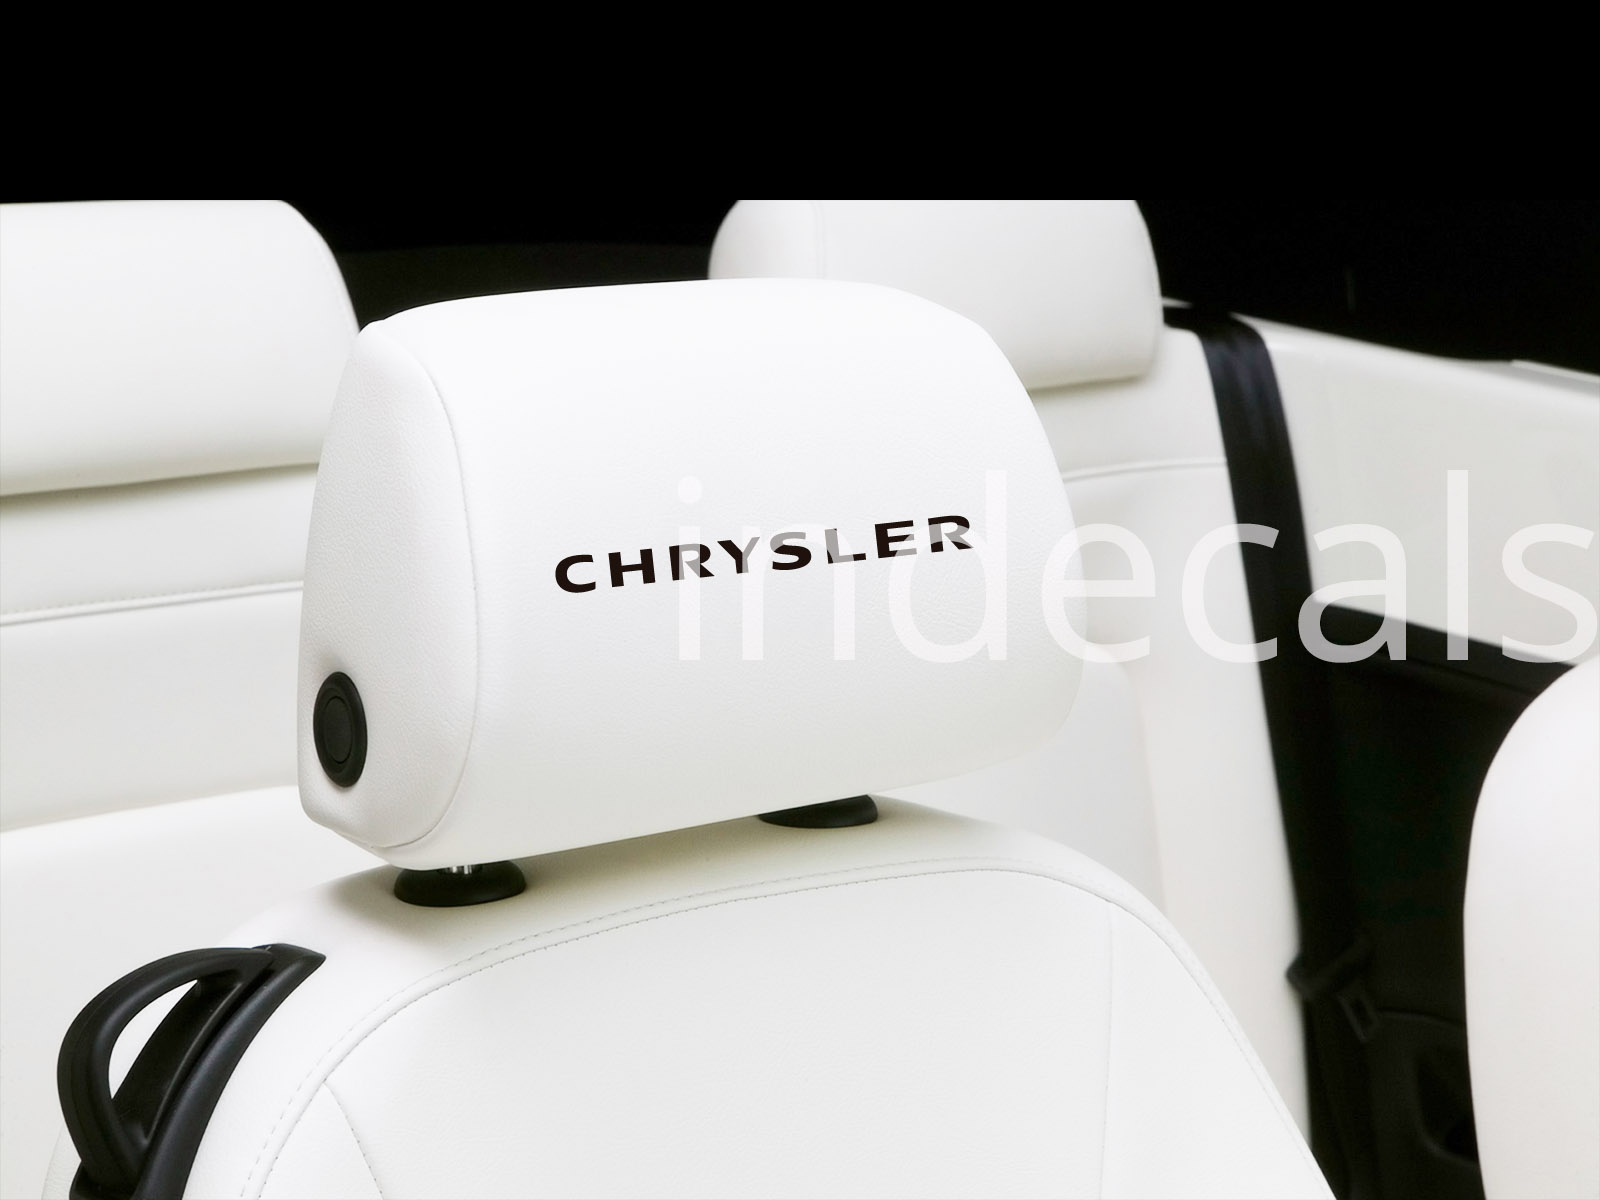 6 x Chrysler Stickers for Headrests - Black